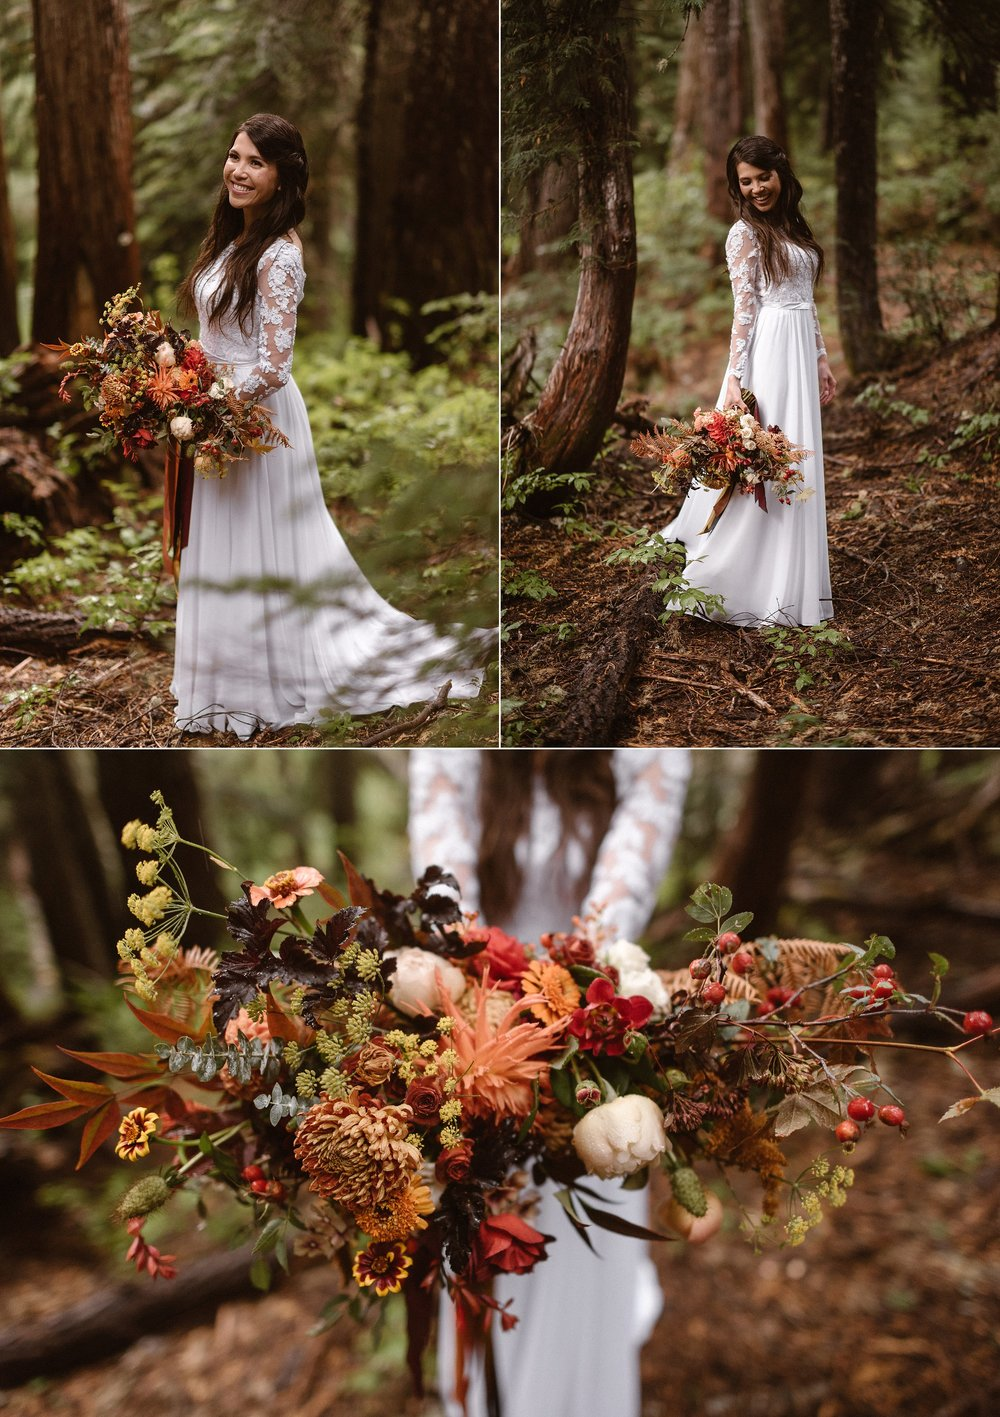 Resa knew that she wanted a bouquet full of color and life with a variety of wild flowers and foliage. Her warm toned oversized tumbling bouquet looked like fire against her bright white wedding dress and the muted greens and earth tones of the forest in Mount Rainier National Park where she and Grant had just eloped with their closest friends and intimate wedding photographer Maddie Mae.